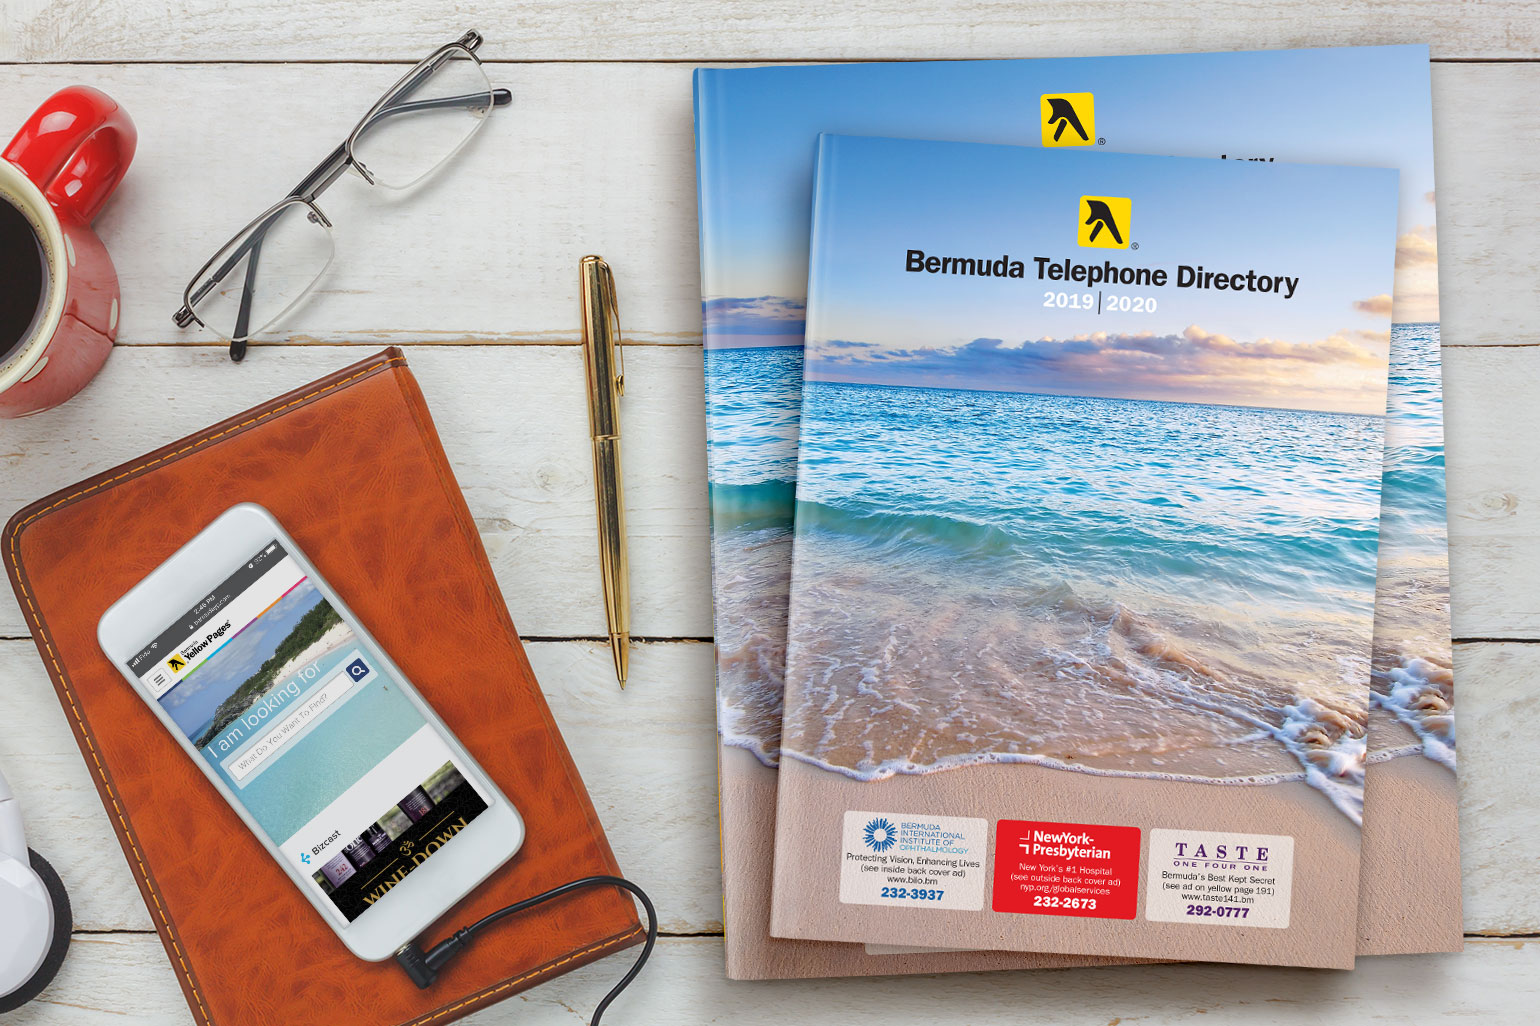 2019 Bermuda Telephone Directory - Available Now! - Bermuda